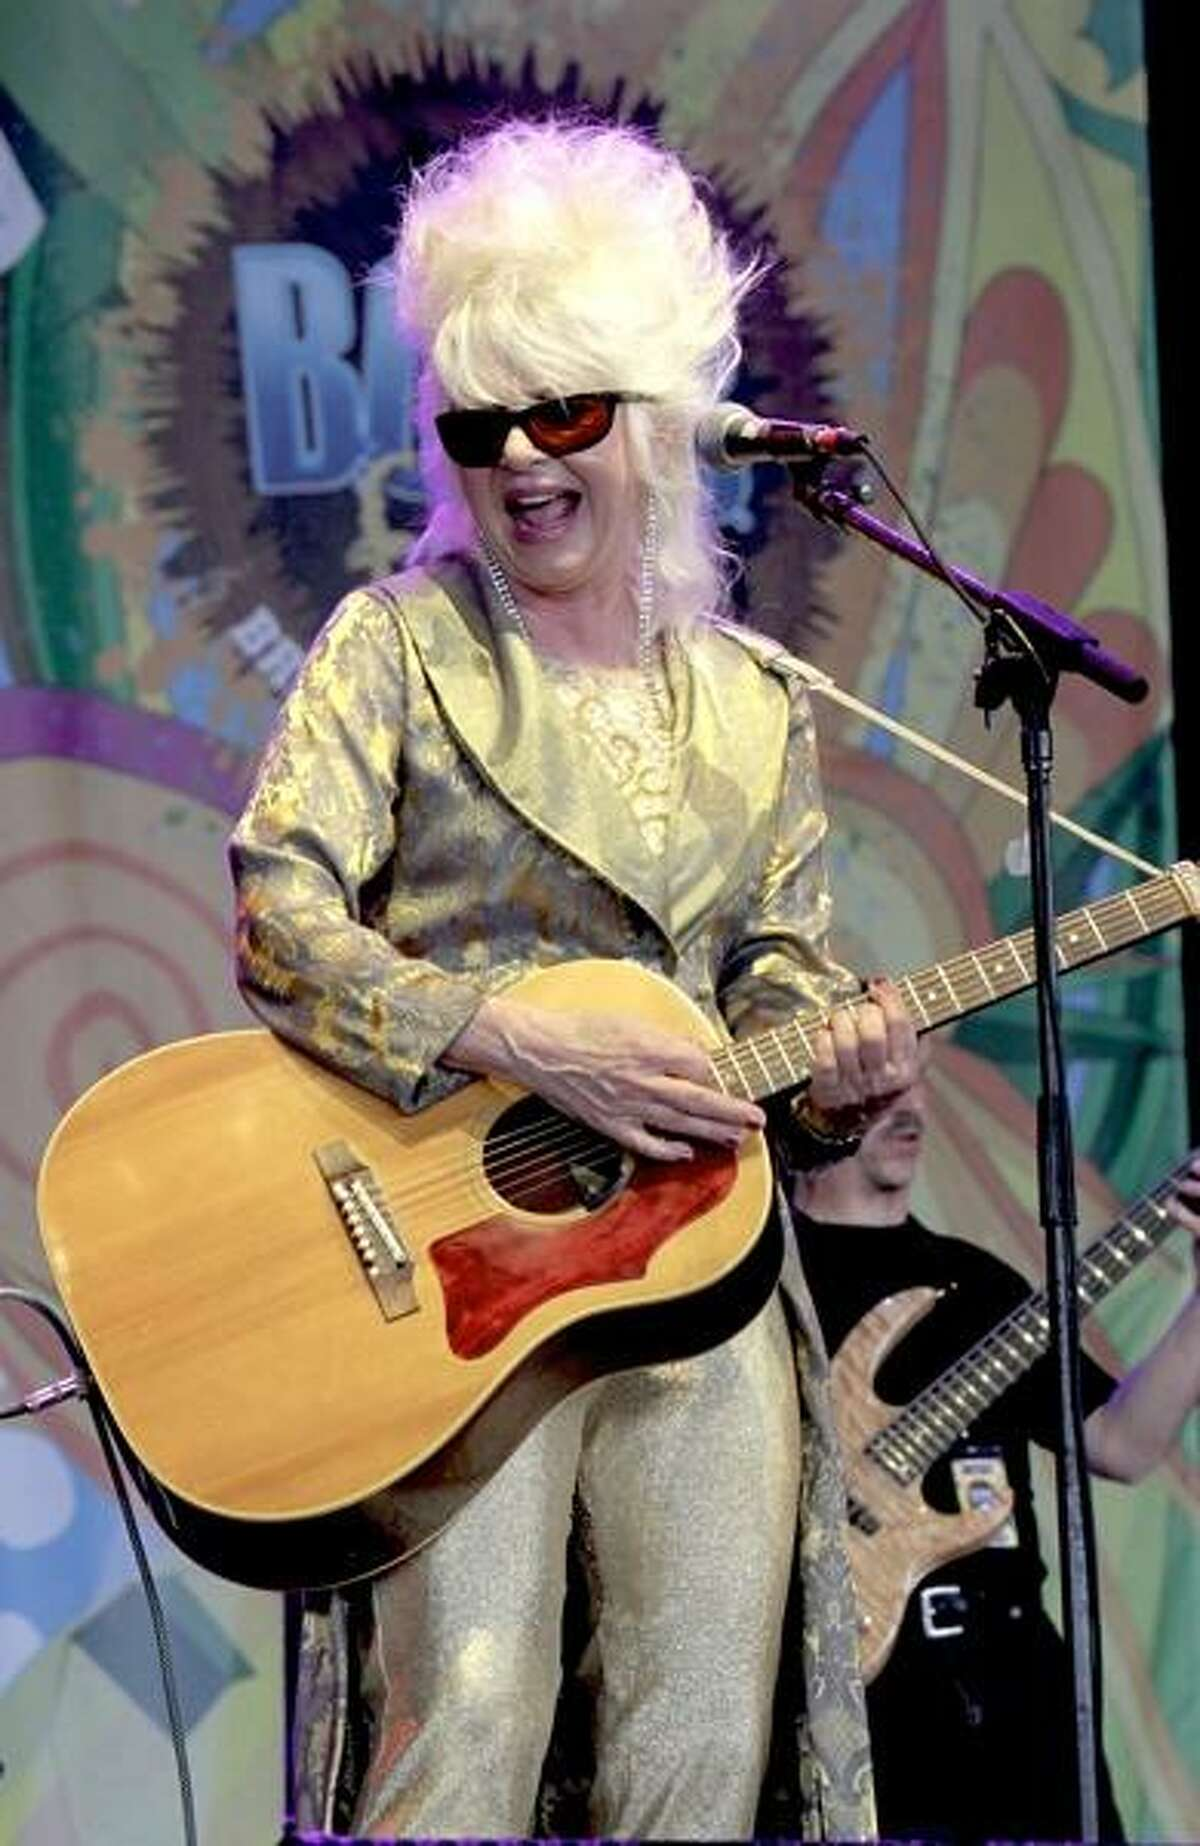 Singer, songwriter & guitarist Christine Ohlman is shown performing on stage during a